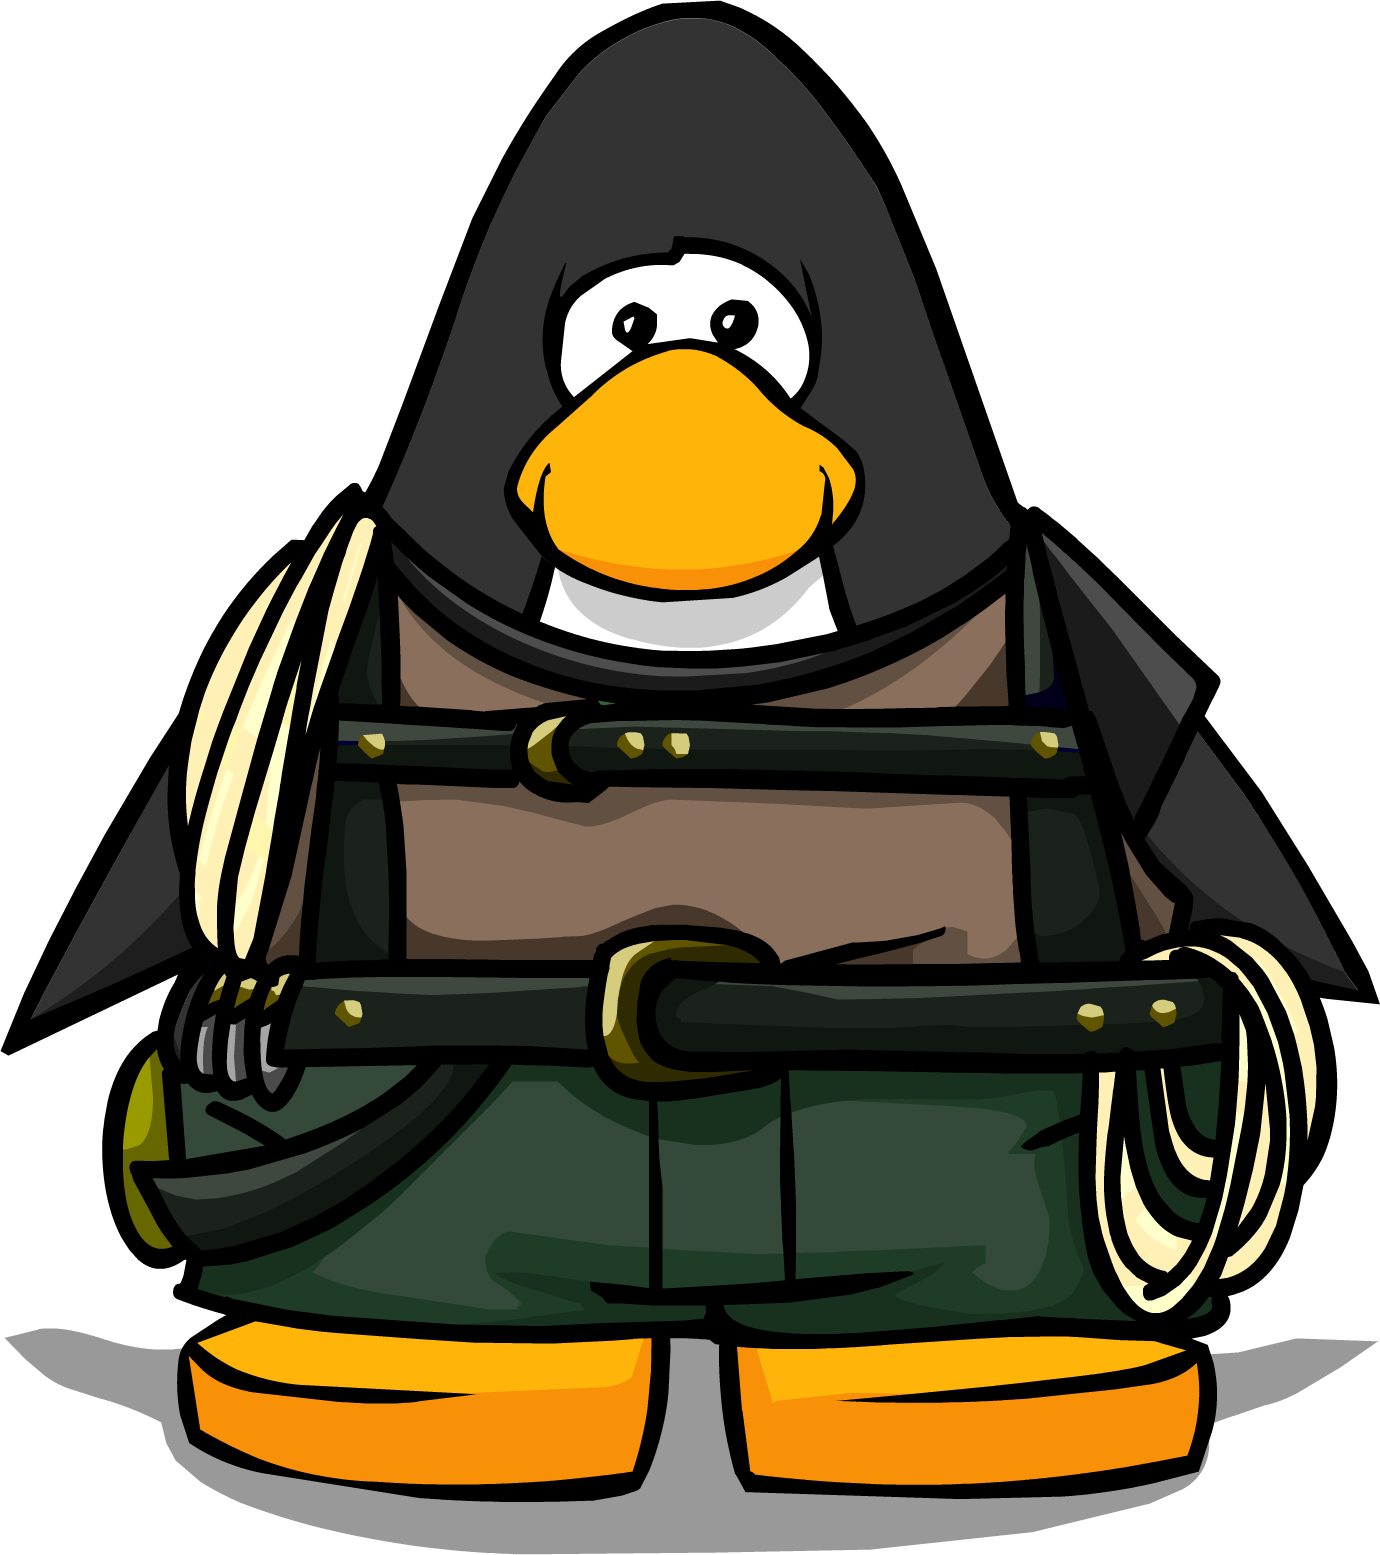 File:Rappelling Gear PC.png